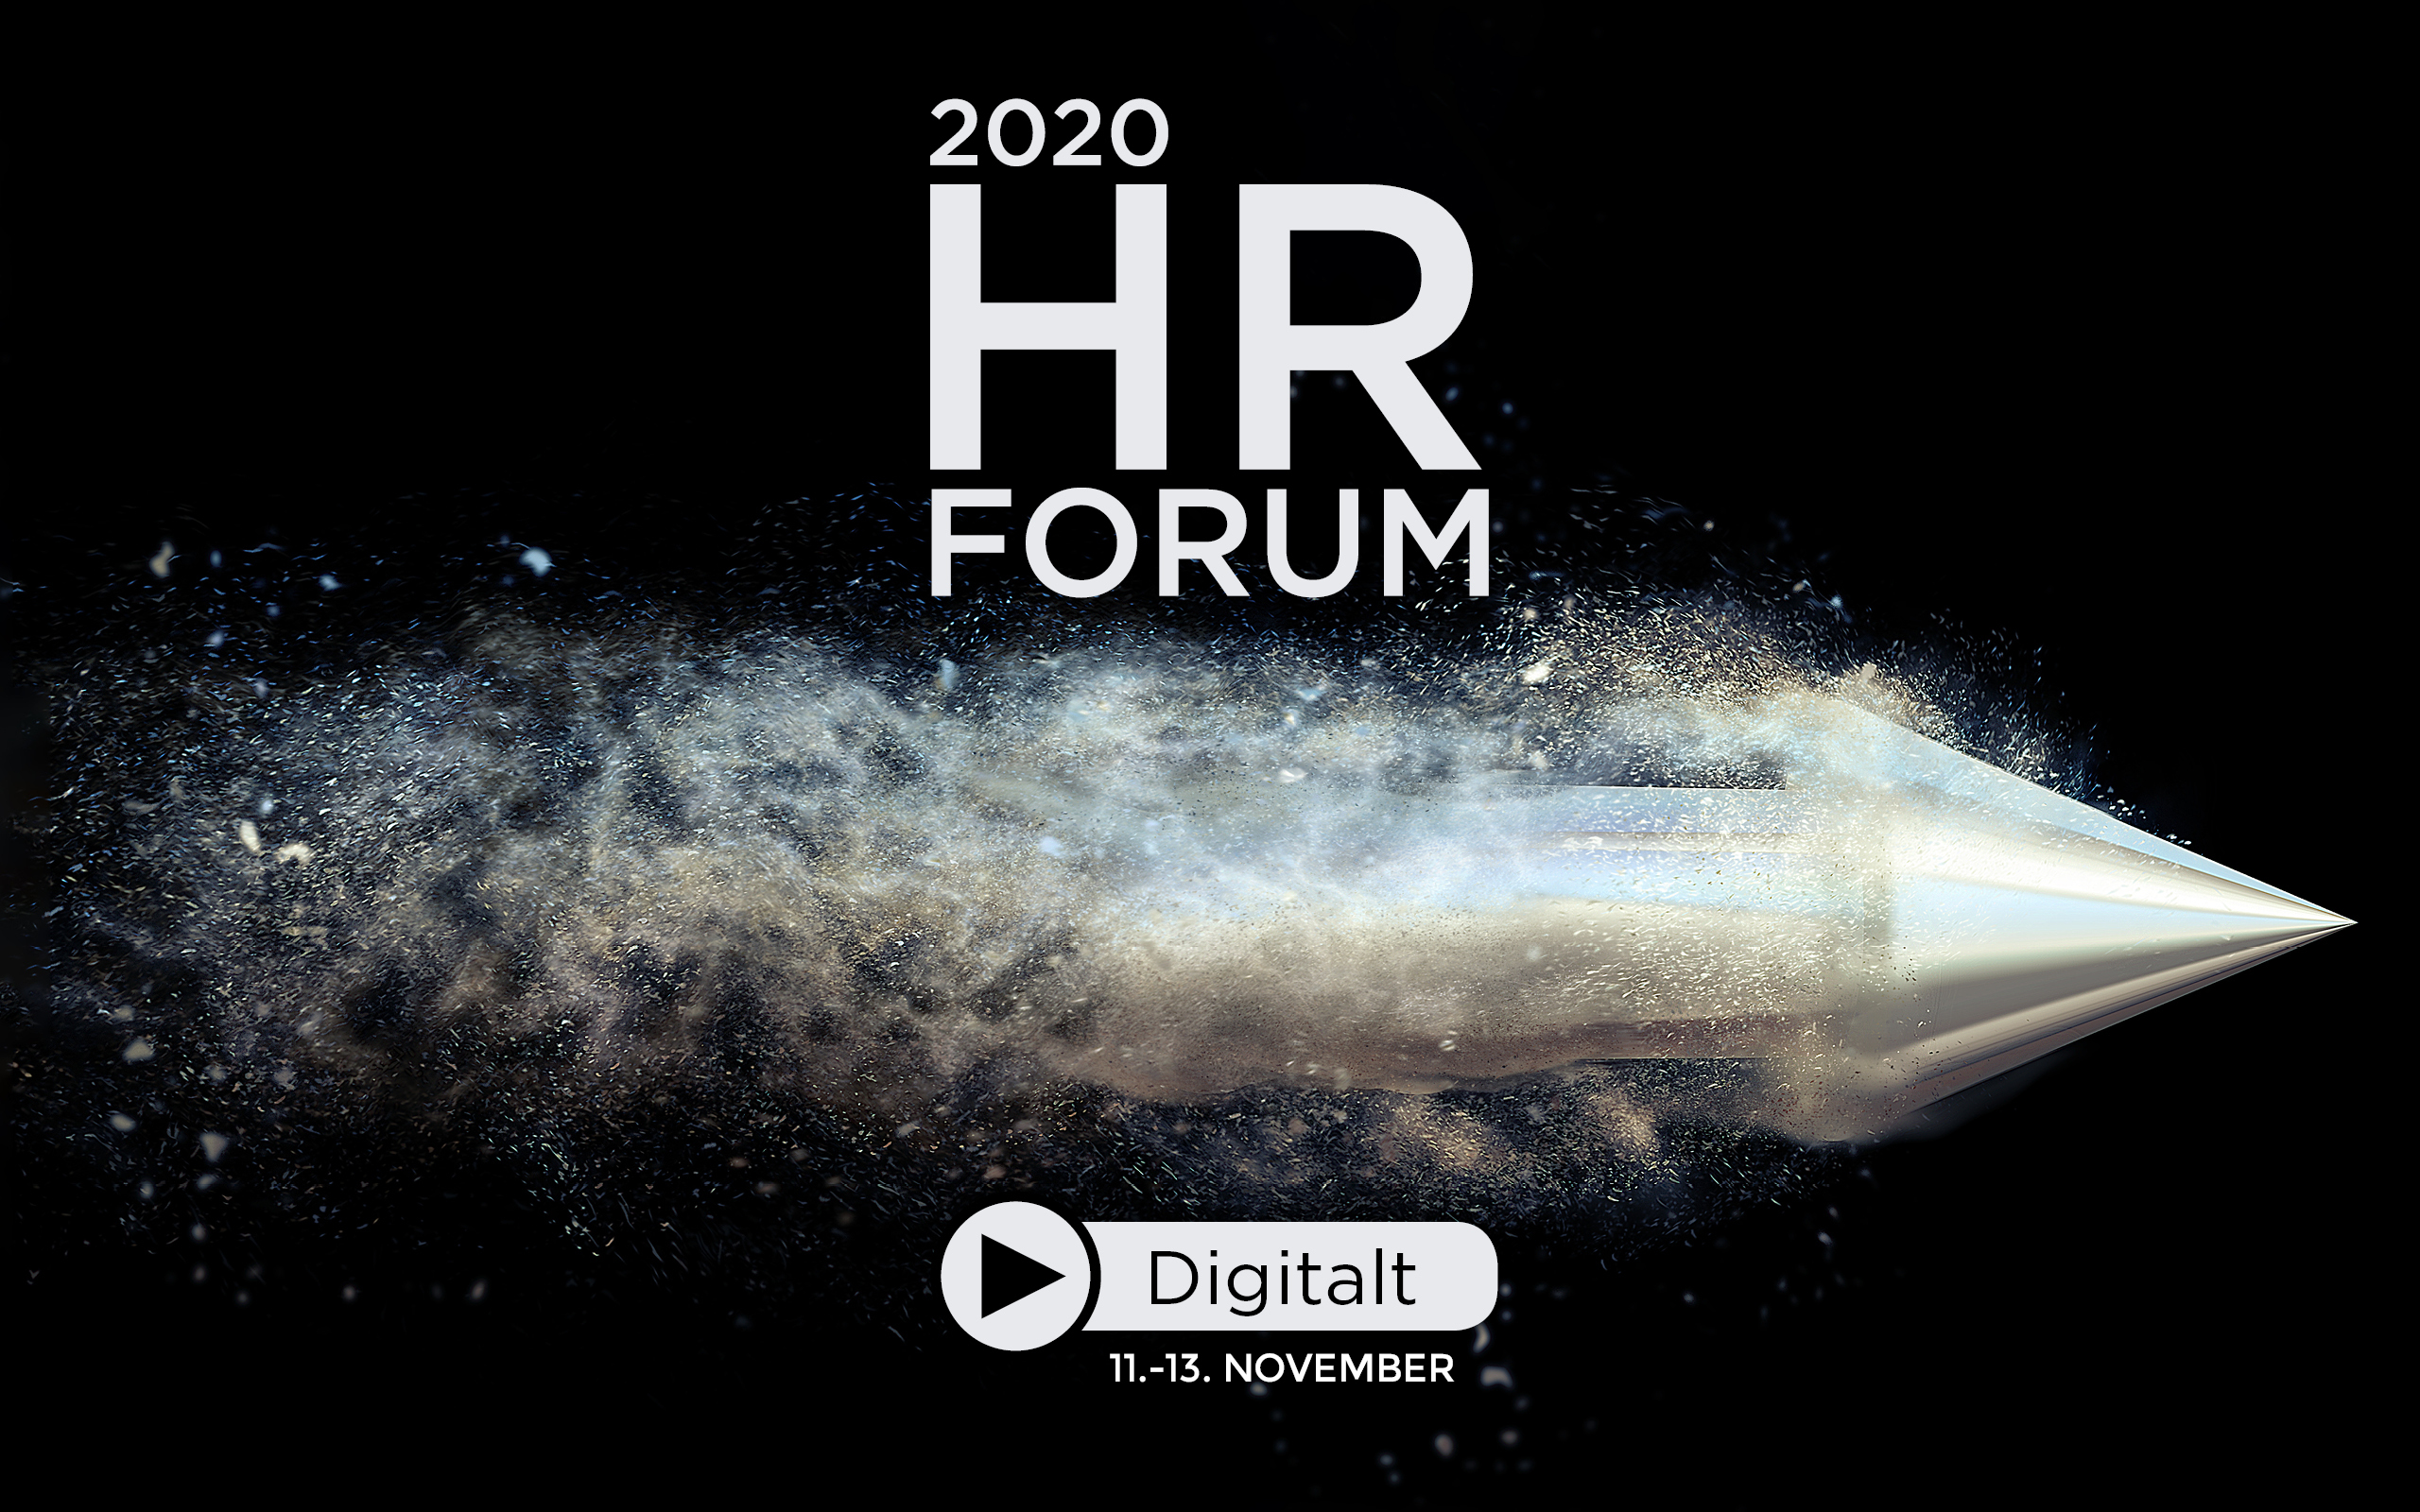 Forside HR Form 2020 - Digitalt